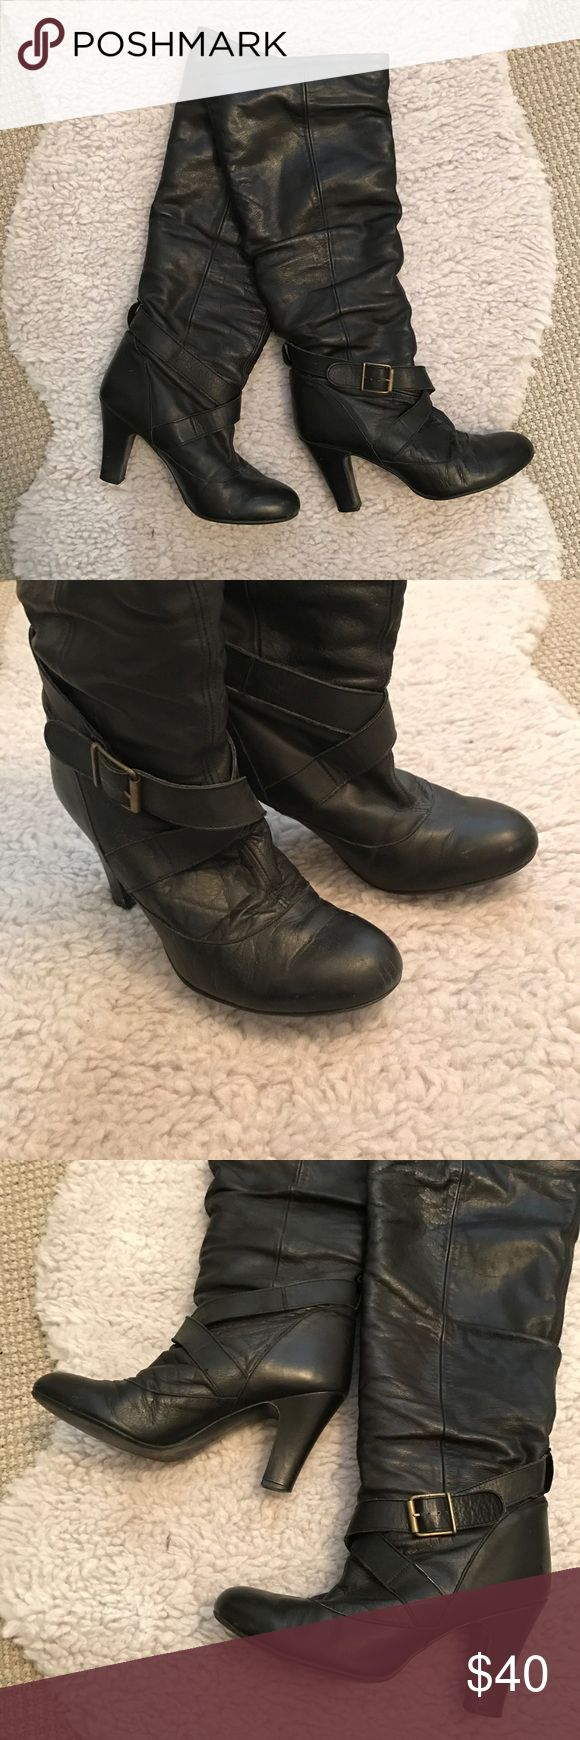 Steve Madden - Tall Black Boots with Buckle Detail Steve Madden - Tall Black Boots with Buckle Detail Steve Madden Shoes Heeled Boots